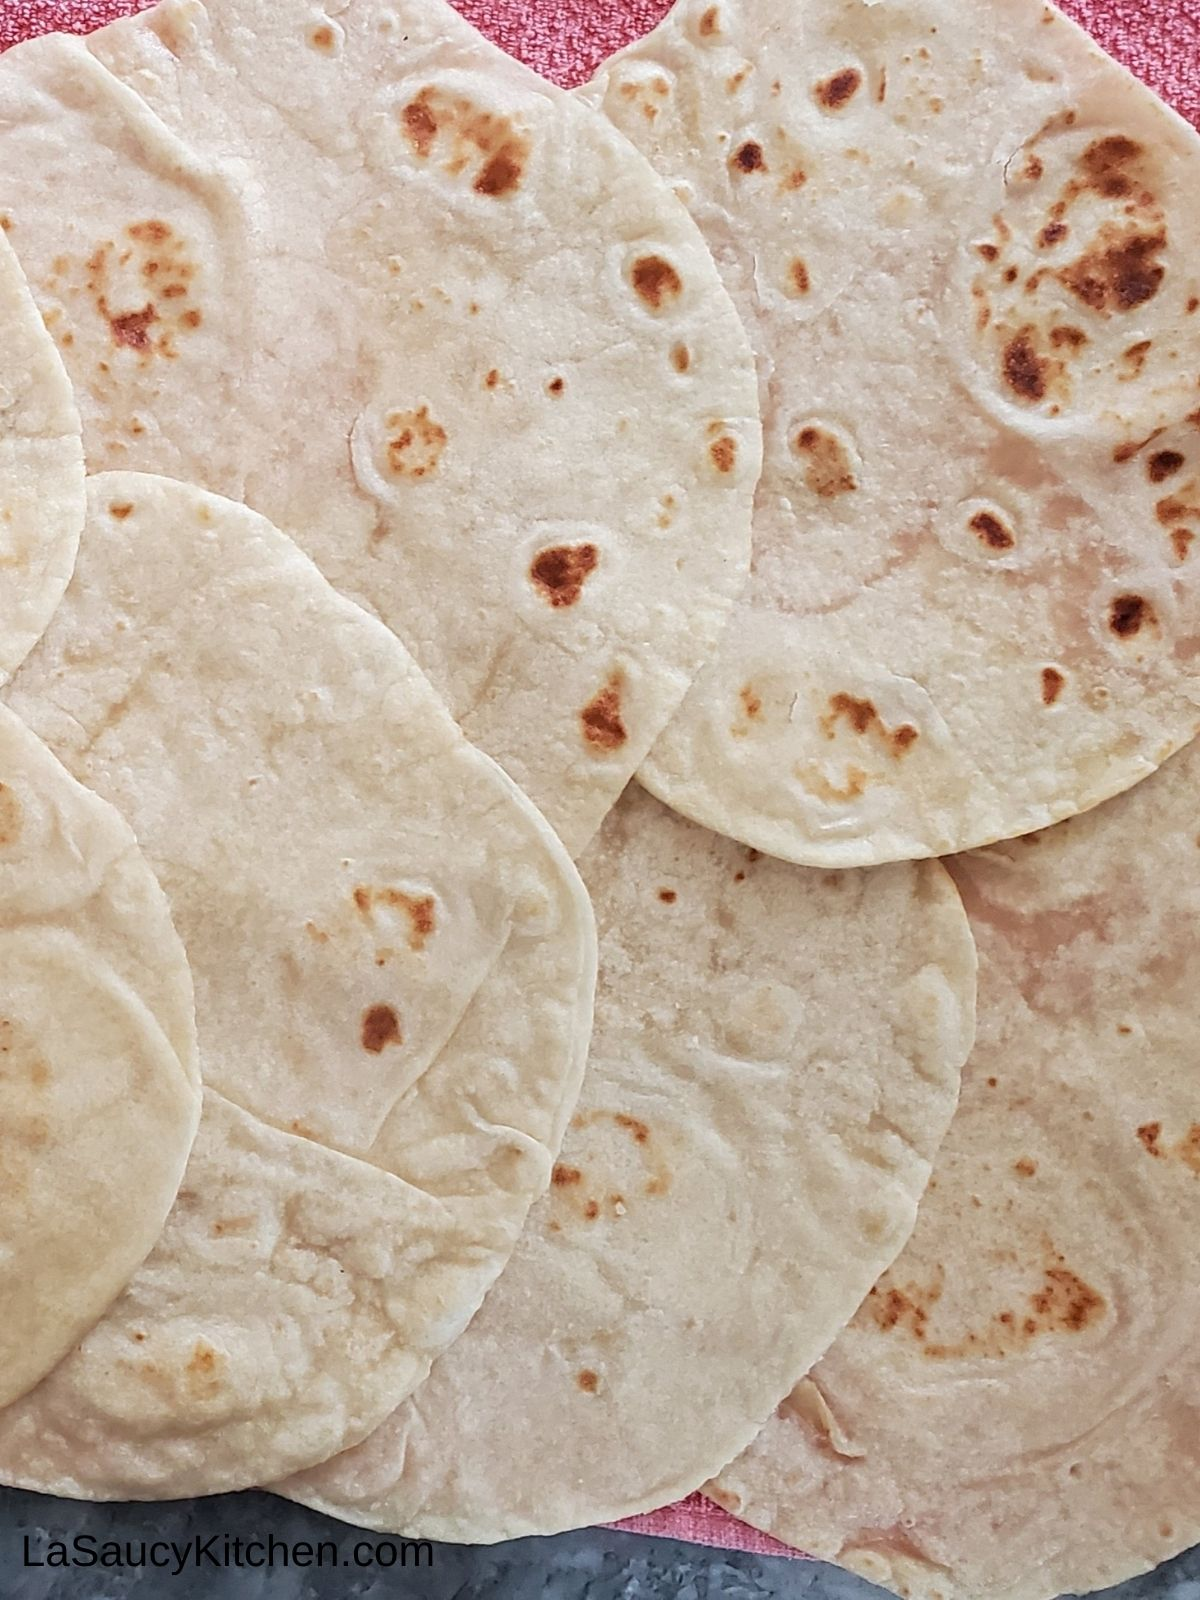 cooked flour tortillas spread out on a pink kitchen towl